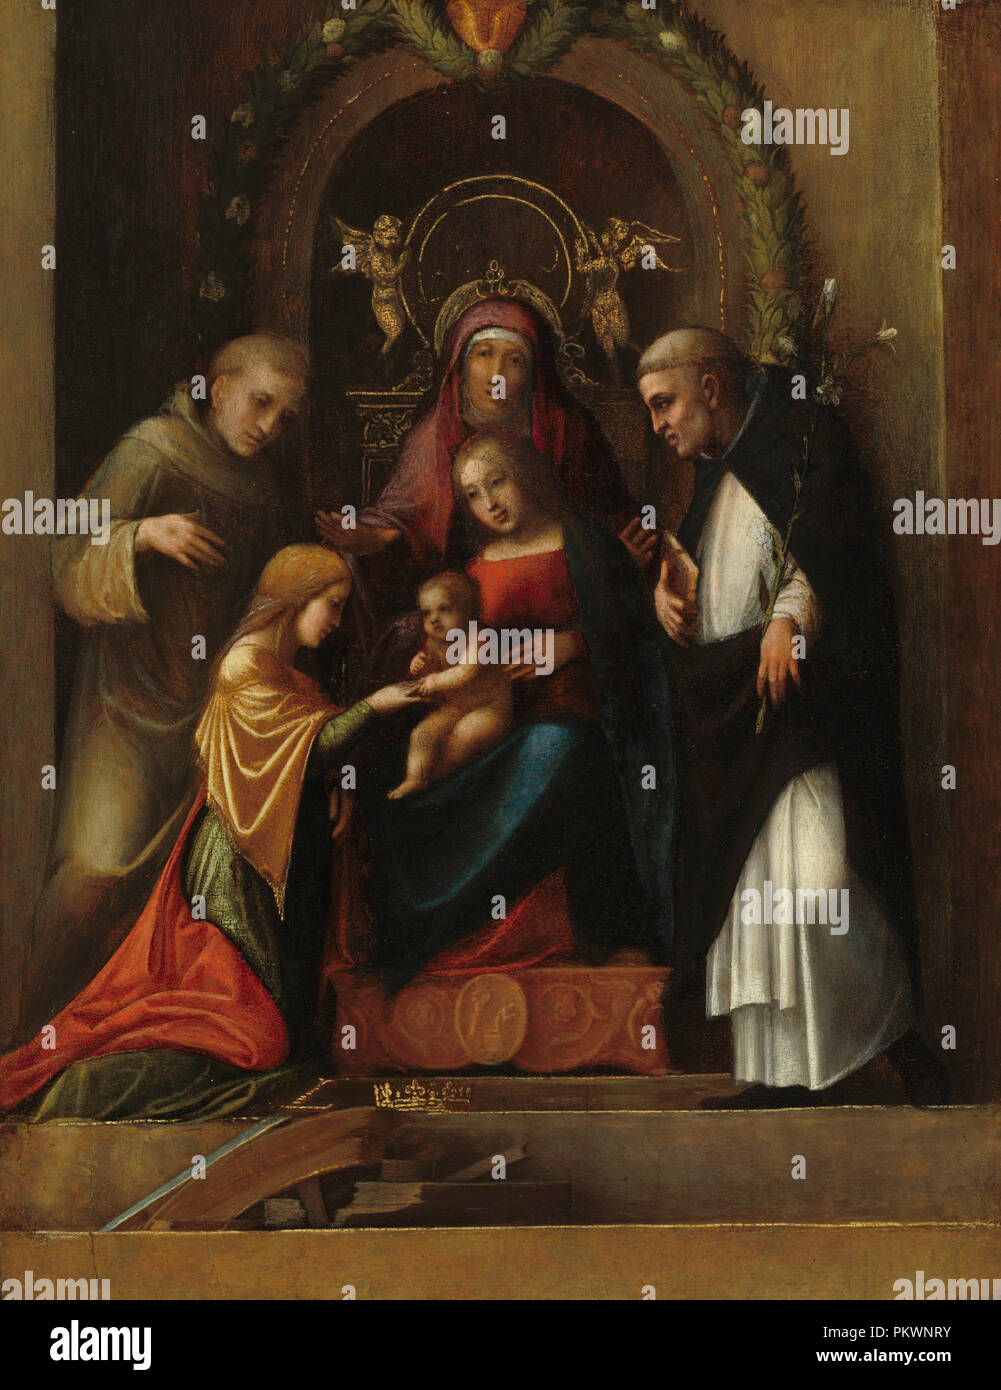 The Mystic Marriage of Saint Catherine. Dated: 1510/1515. Dimensions: overall: 27.7 x 21.4 cm, 0.5 cm (10 7/8 x 8 7/16 in., 3/16 in.)  overall (with added edge strips): 29 x 22.4 cm (11 7/16 x 8 13/16 in.)  framed: 40.16 x 33.81 x 4.92 cm (15 13/16 x 13 5/16 x 1 15/16 in.). Medium: oil on panel. Museum: National Gallery of Art, Washington DC. Author: CORREGGIO. - Stock Image